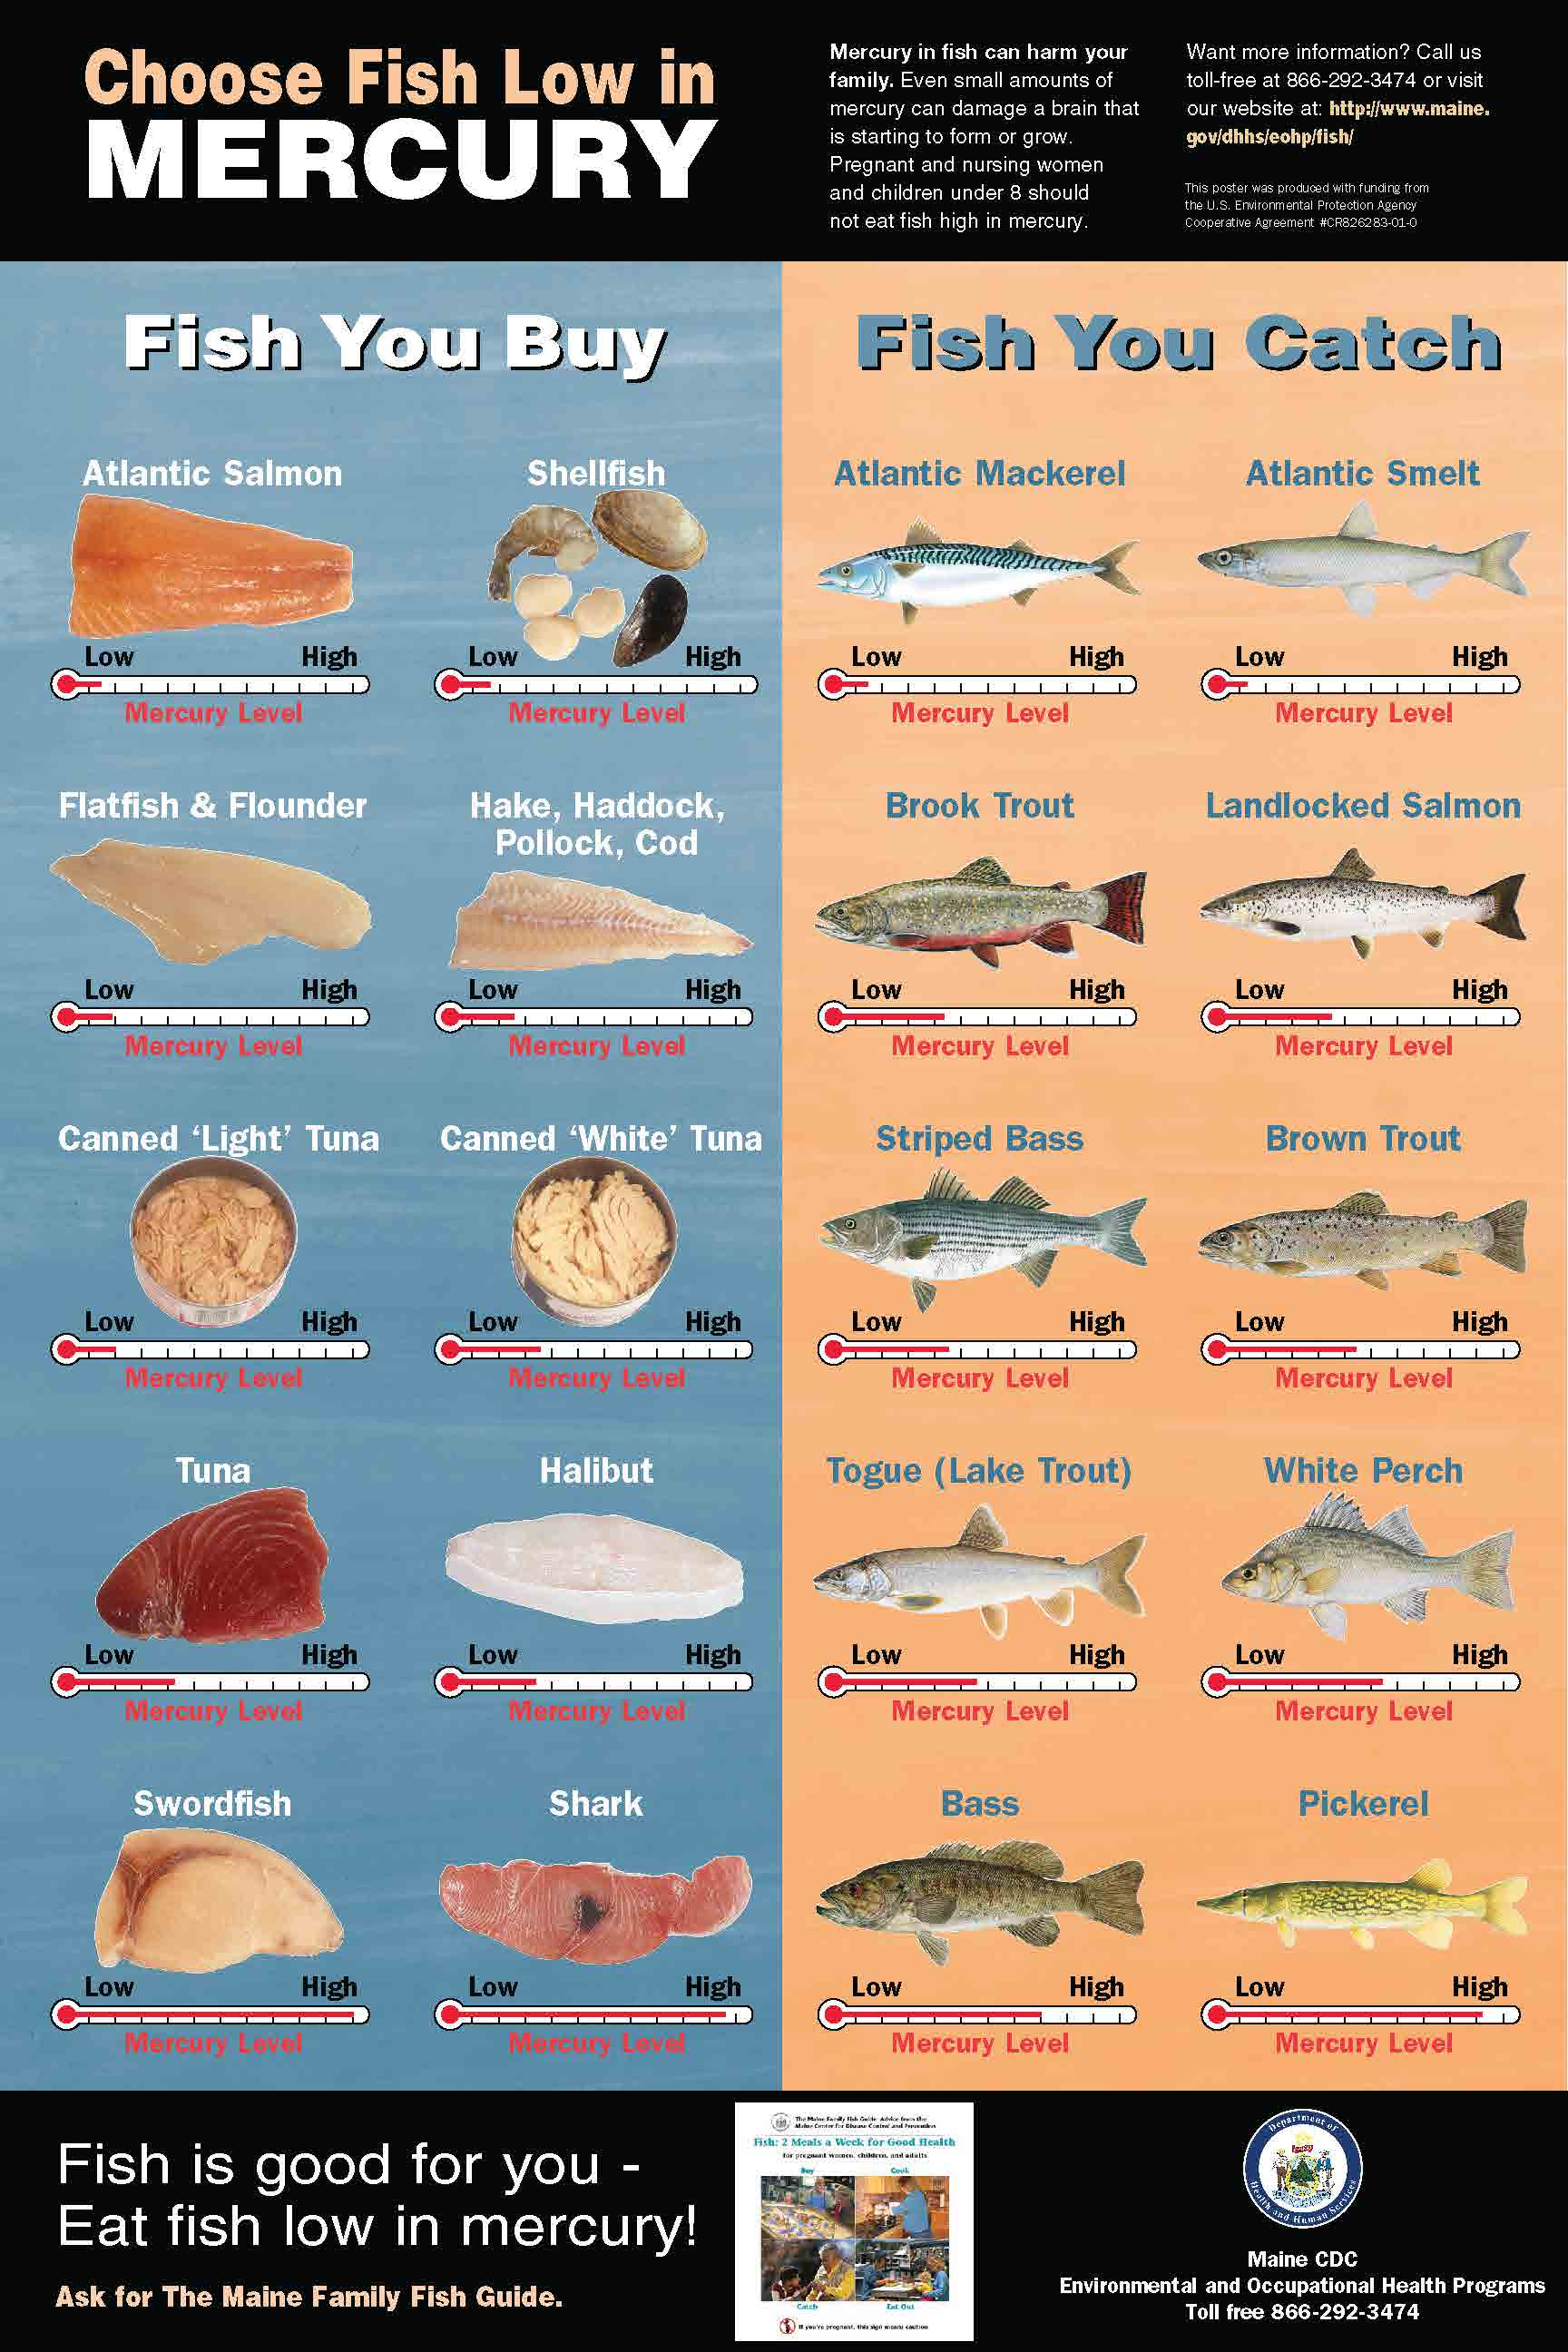 This Poster Shows Mercury Levels For Diffe Kinds Of Fish